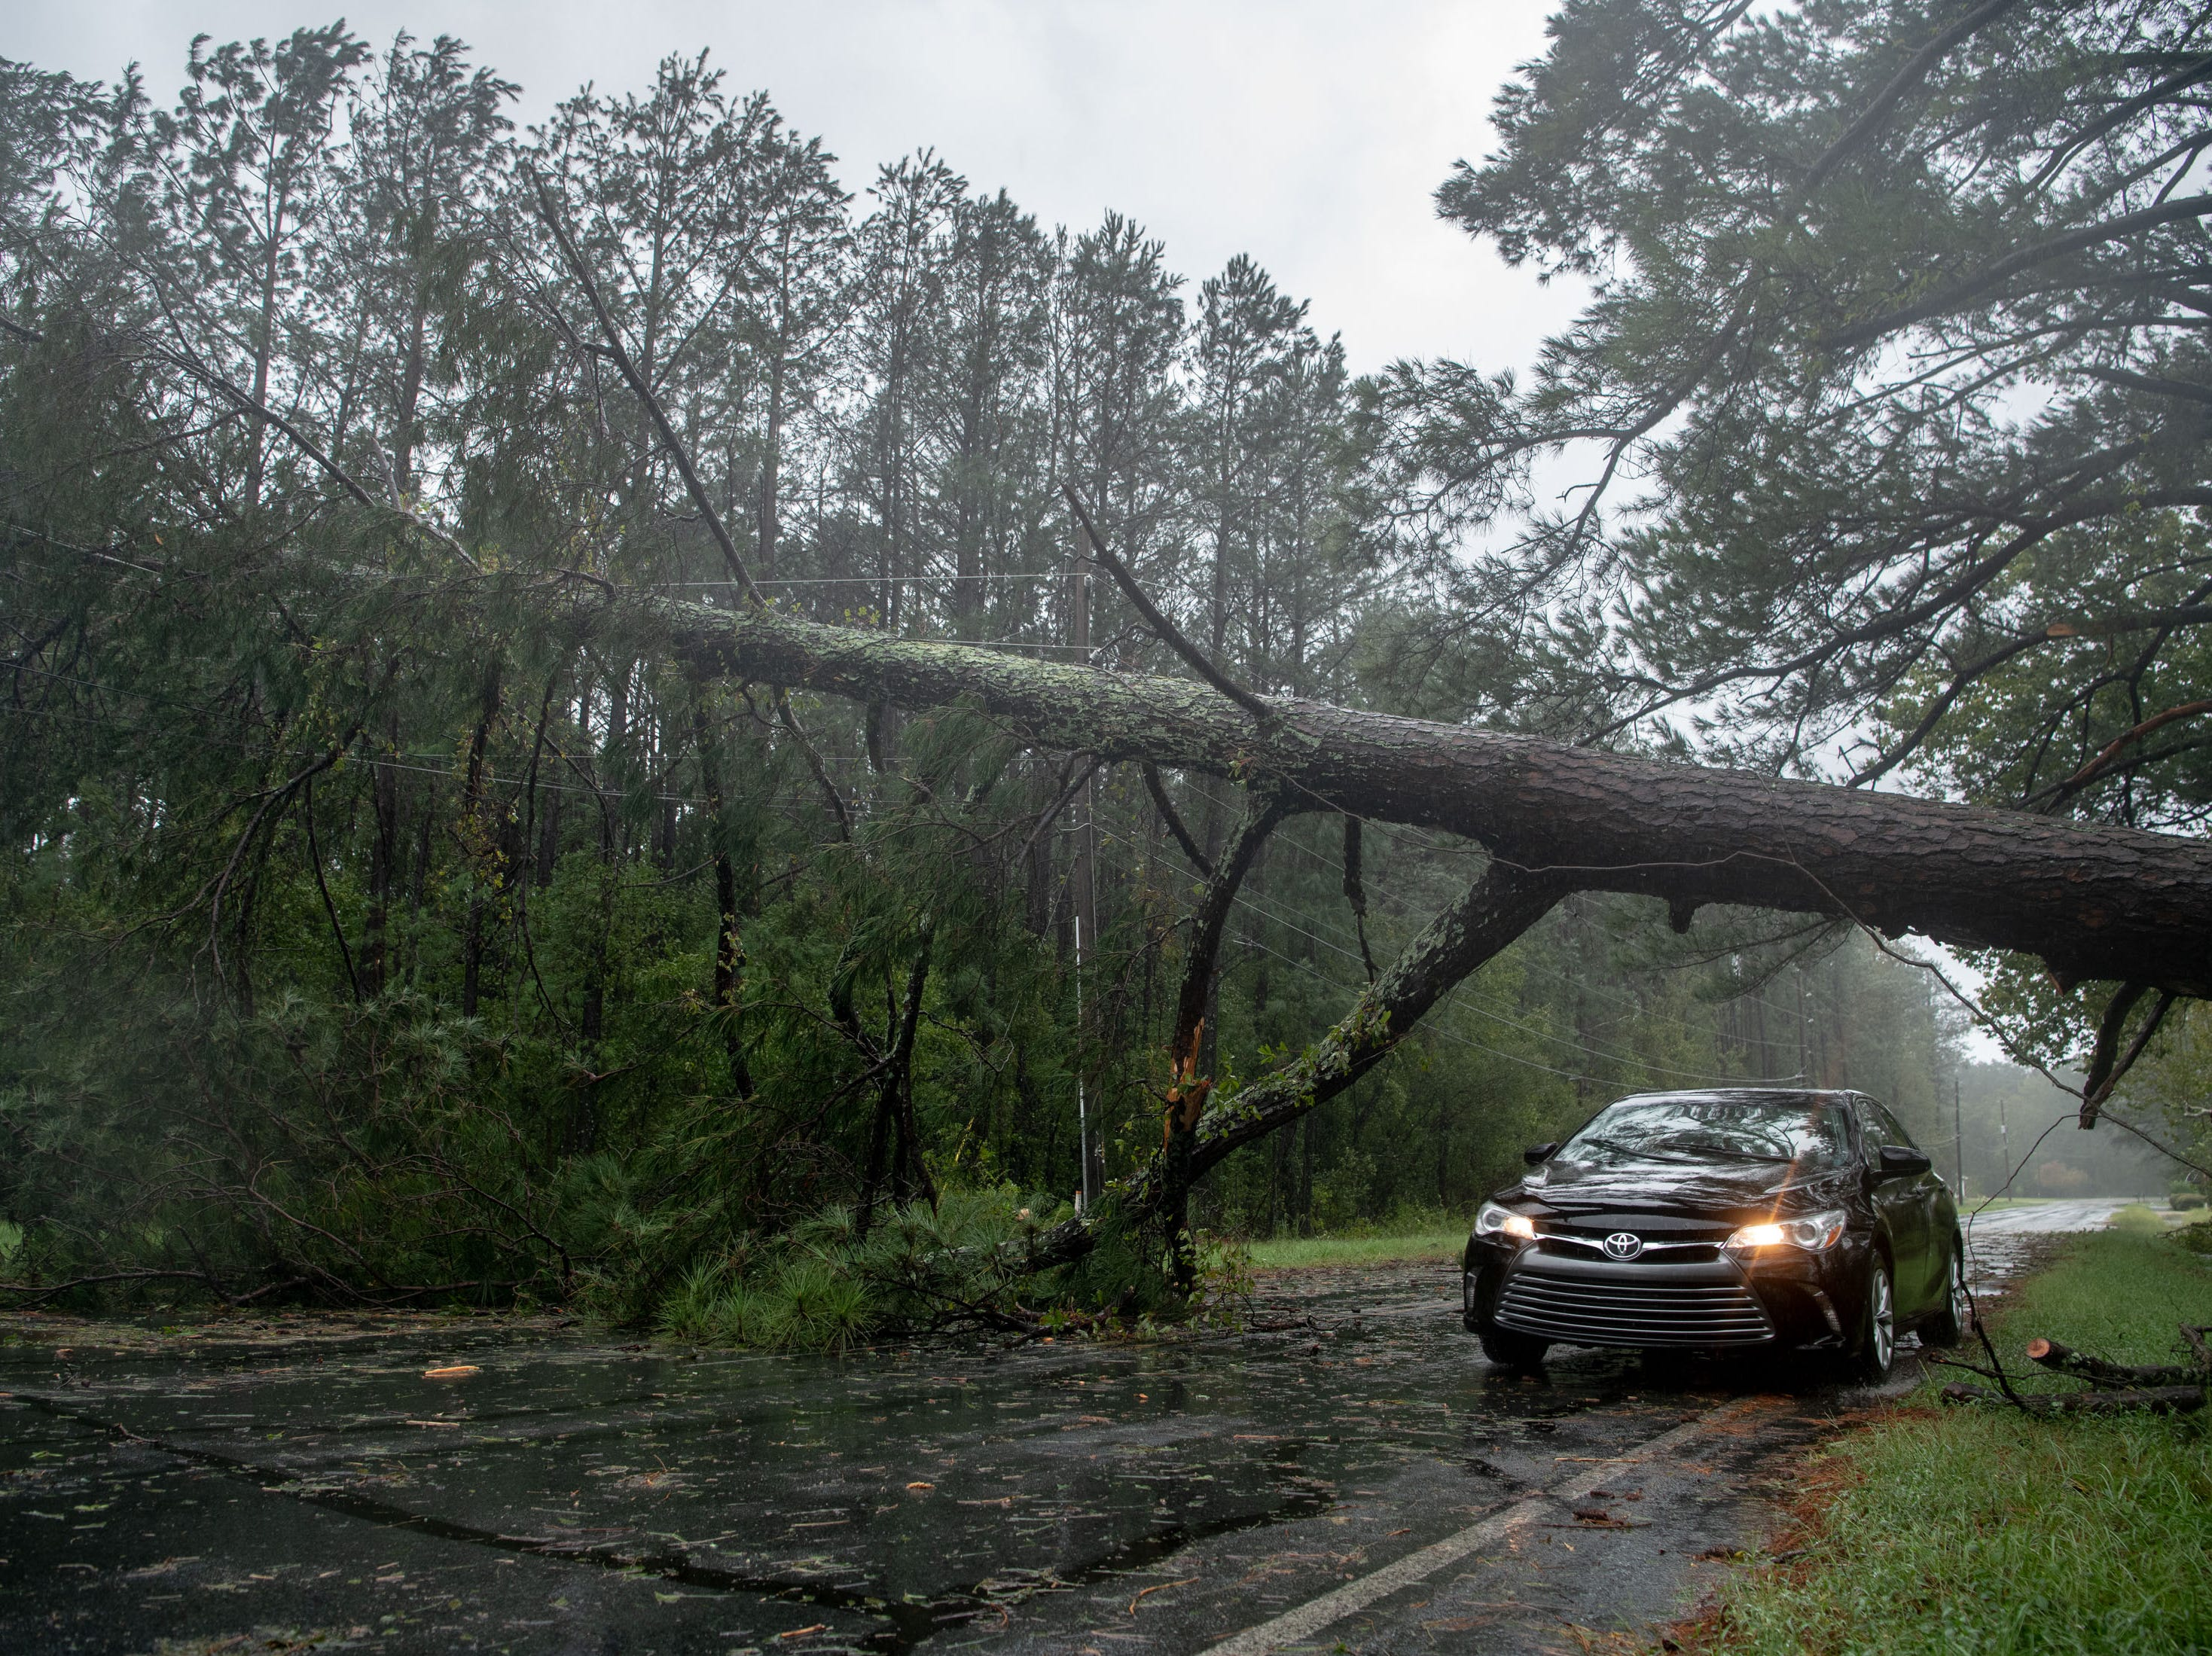 A car passes under a fallen tree as rain from Tropical Storm Florence continues to fall in Lumberton, N.C., Saturday, Sept. 15, 2018.